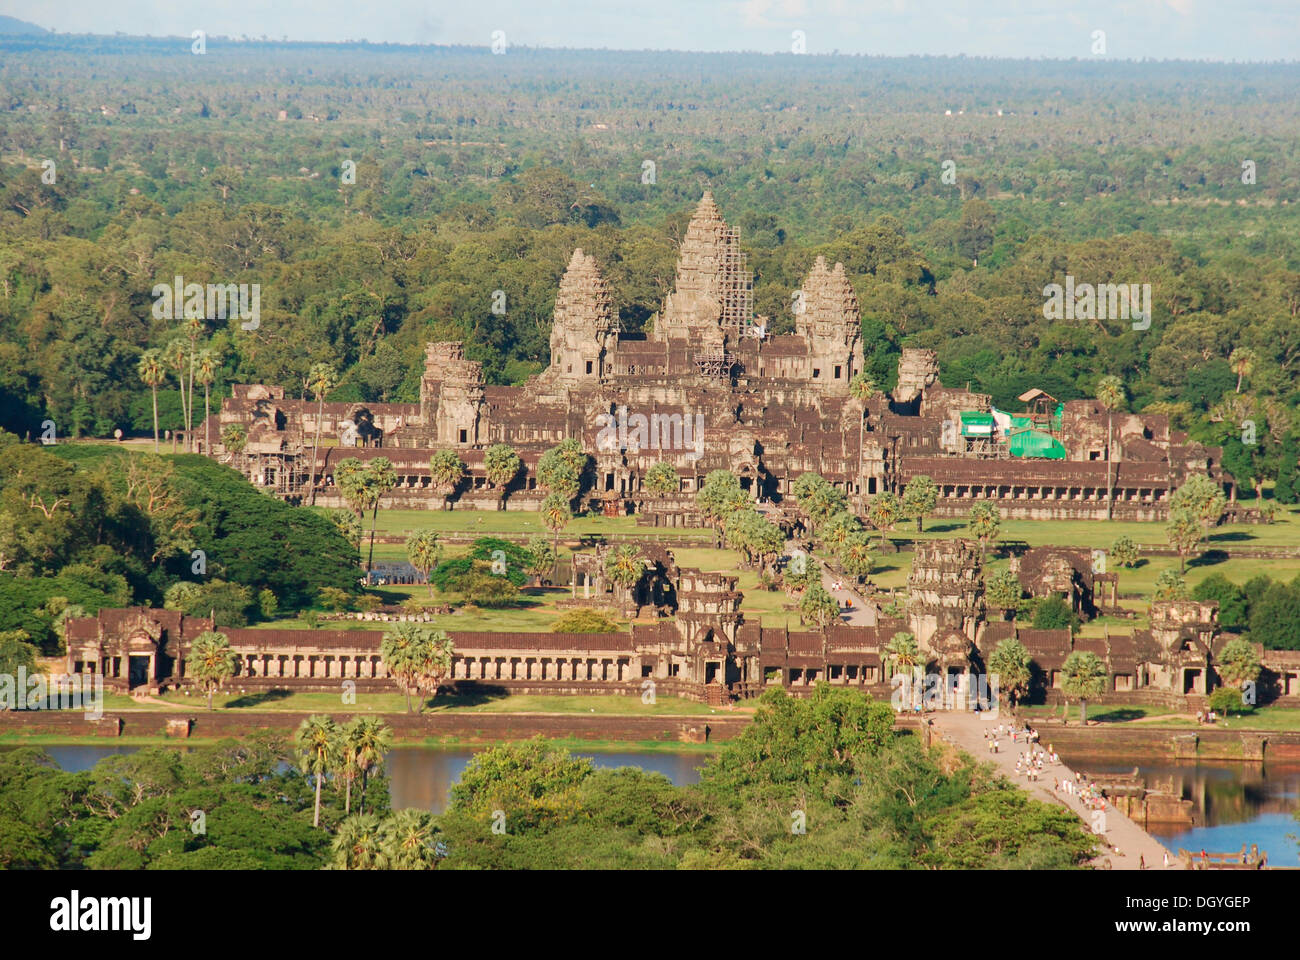 Stock Photo Angkor Wat Temple Aerial View Angkor Wat Siem Reap Cambodia Southeast 62071262 on body building a cart